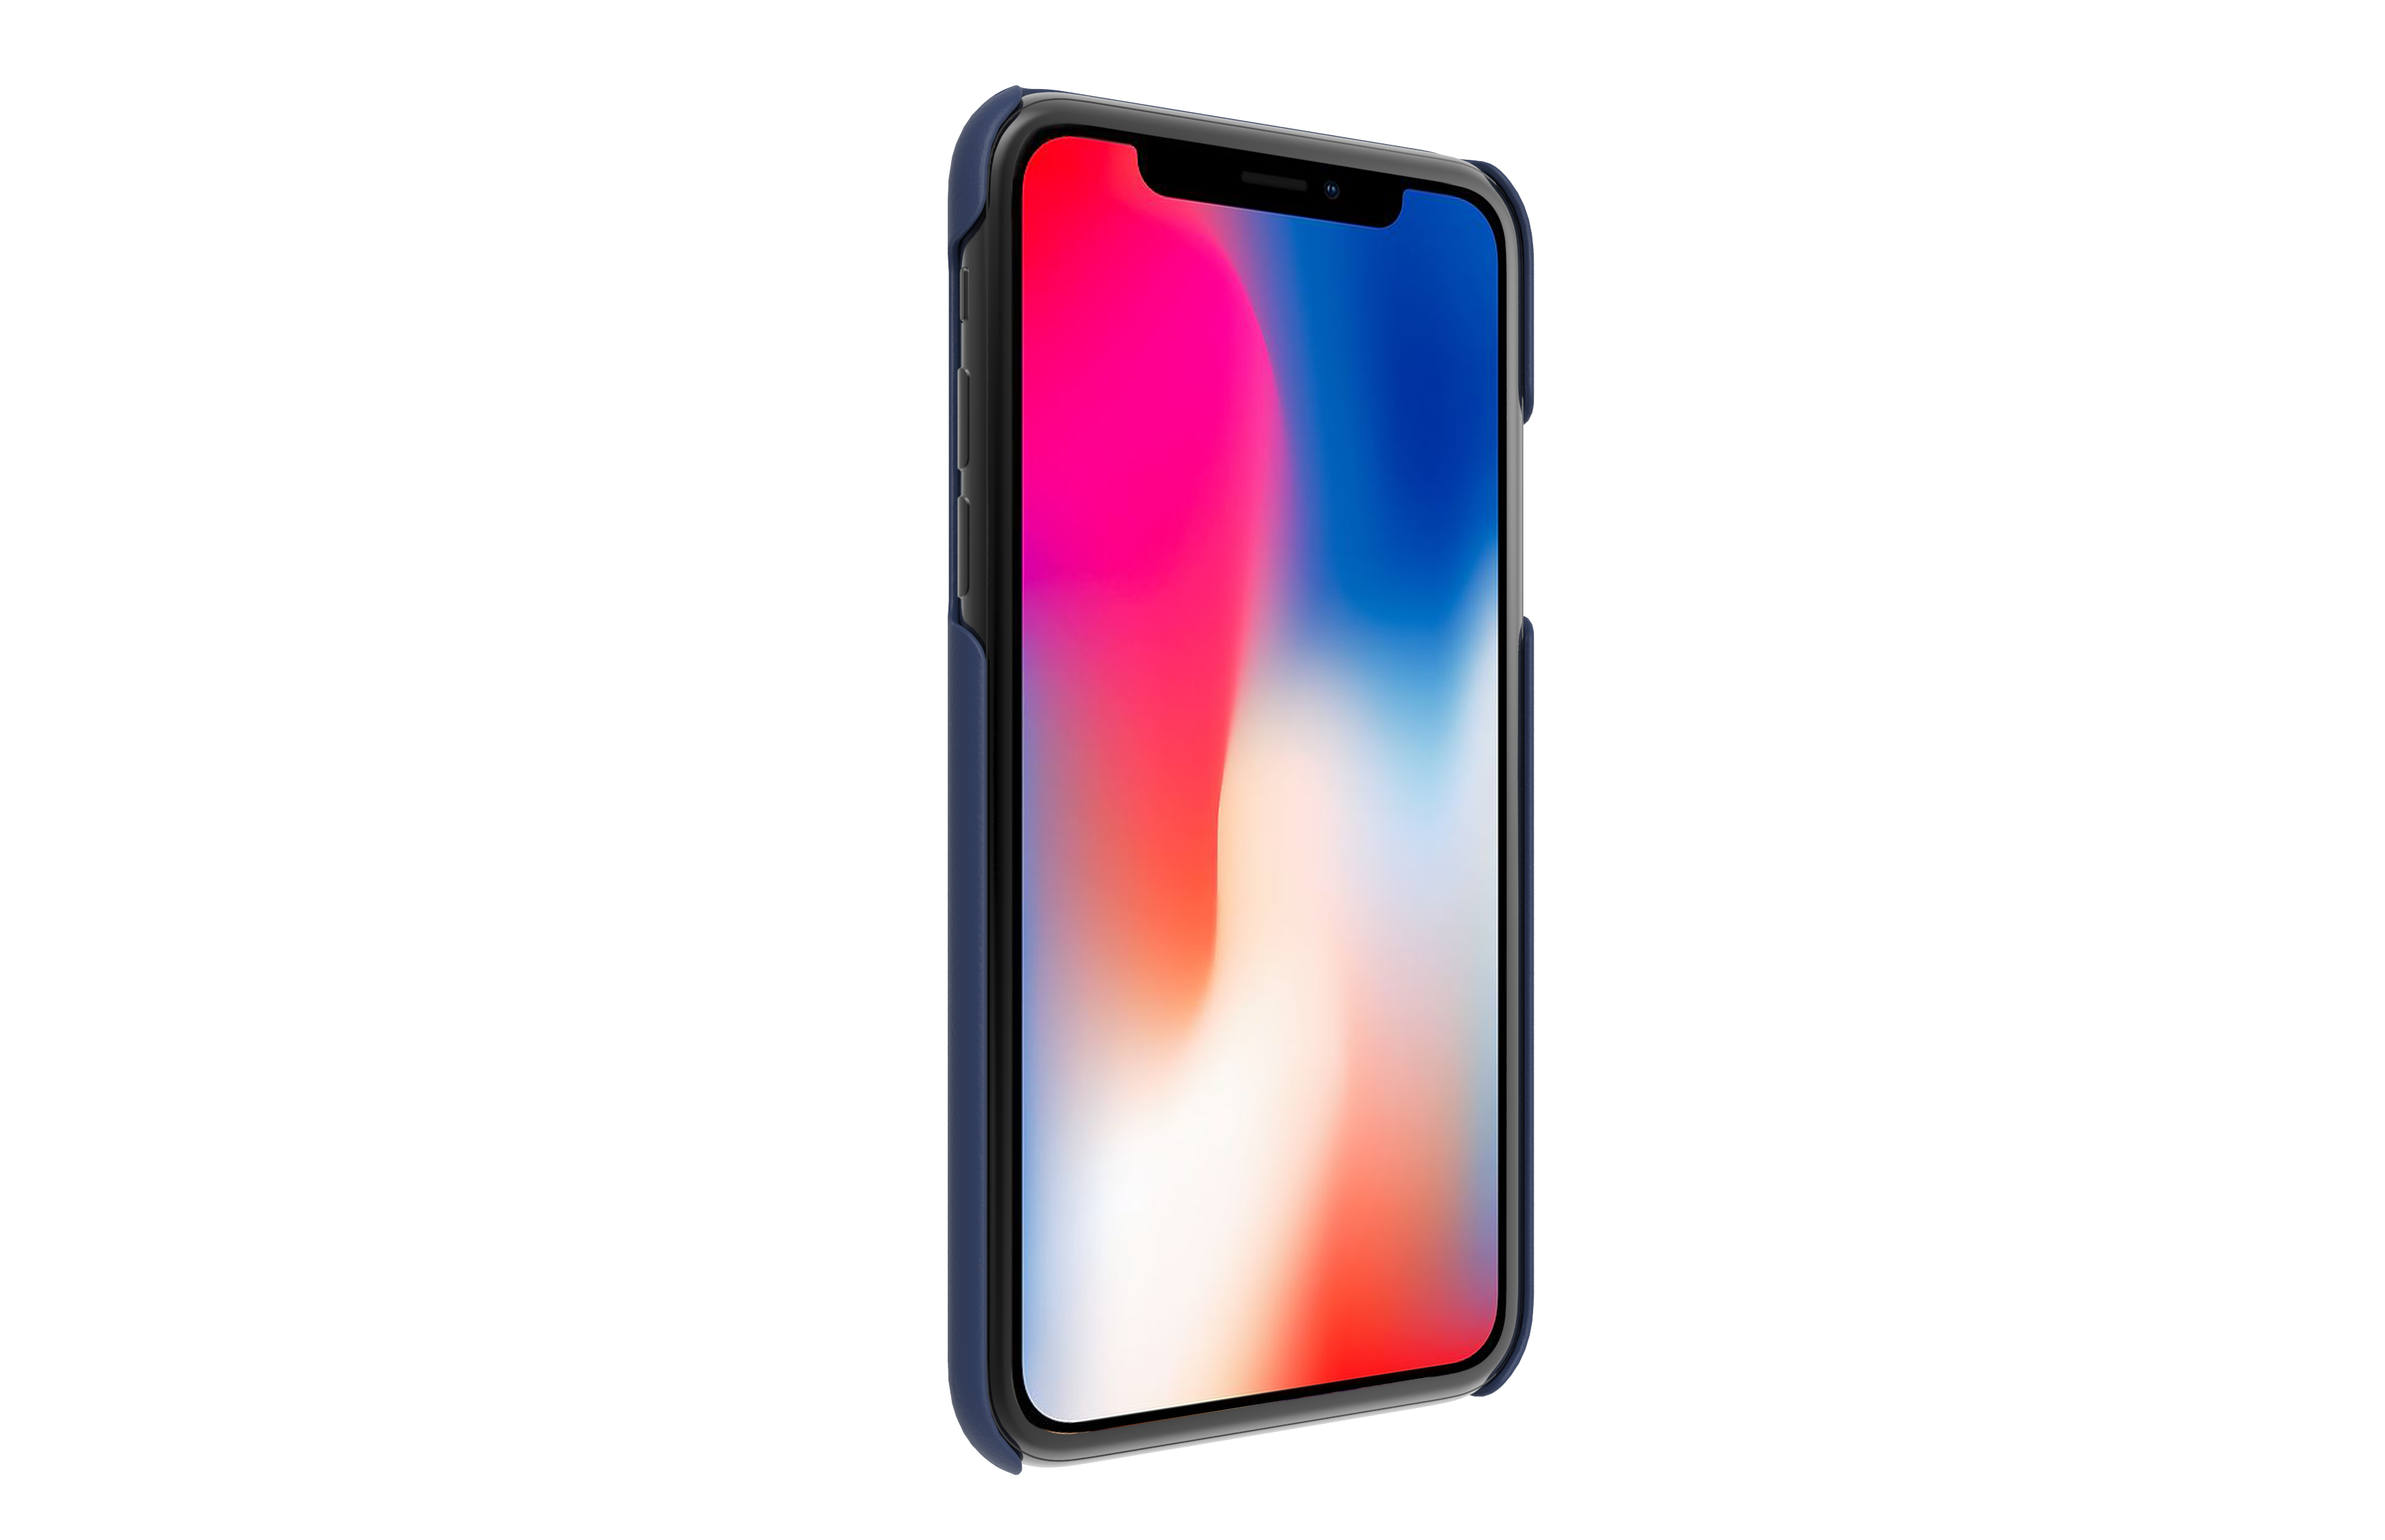 iphoneX blue-4